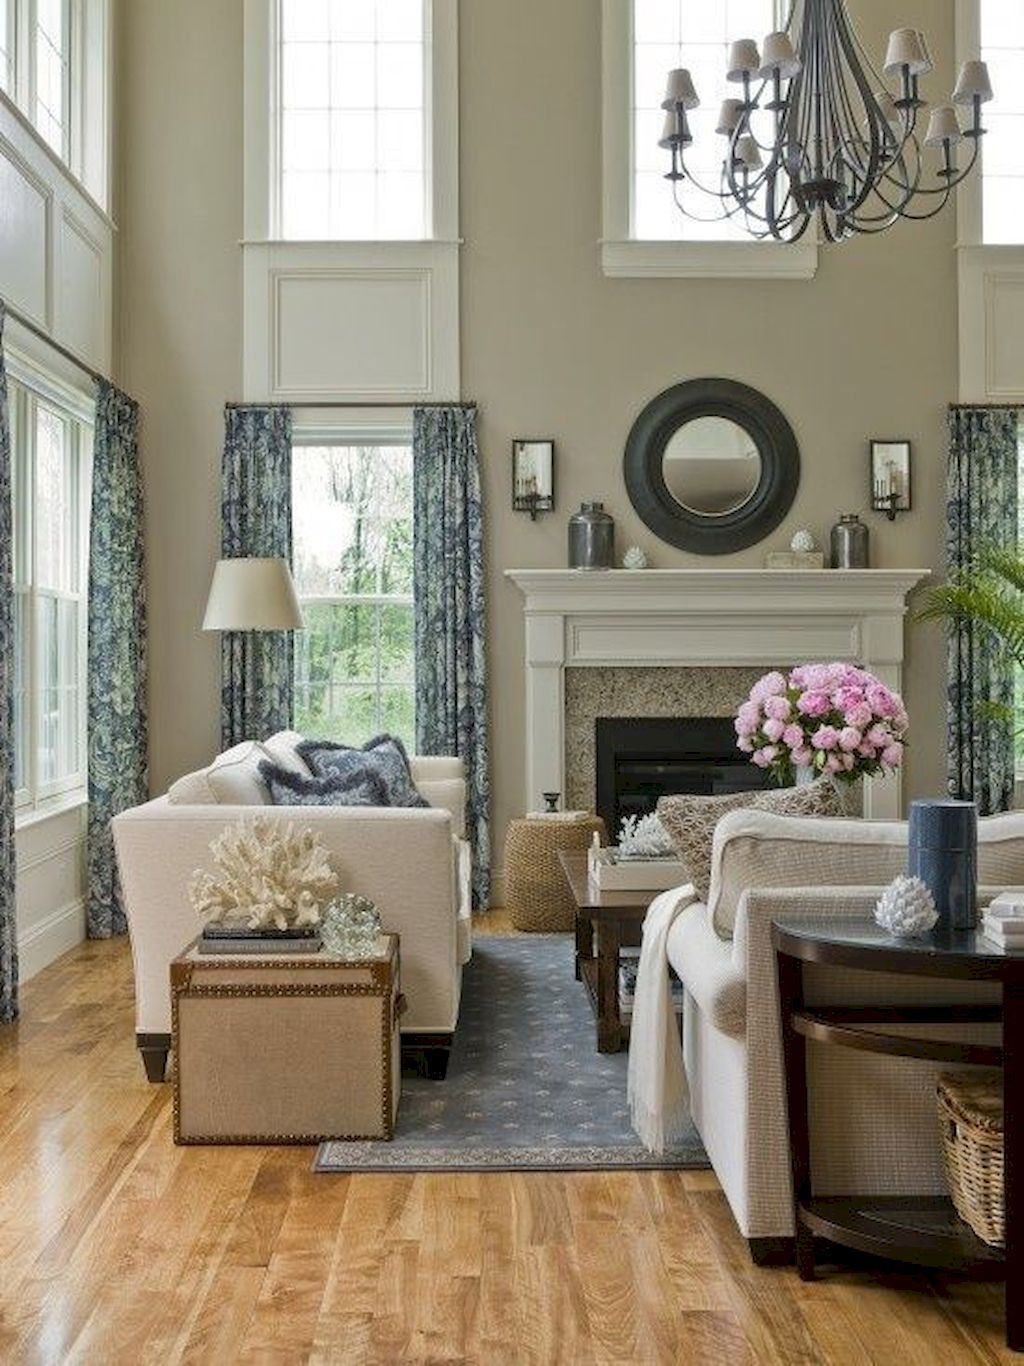 60 Beautiful French Country Living Room Decor Ideas (With ...